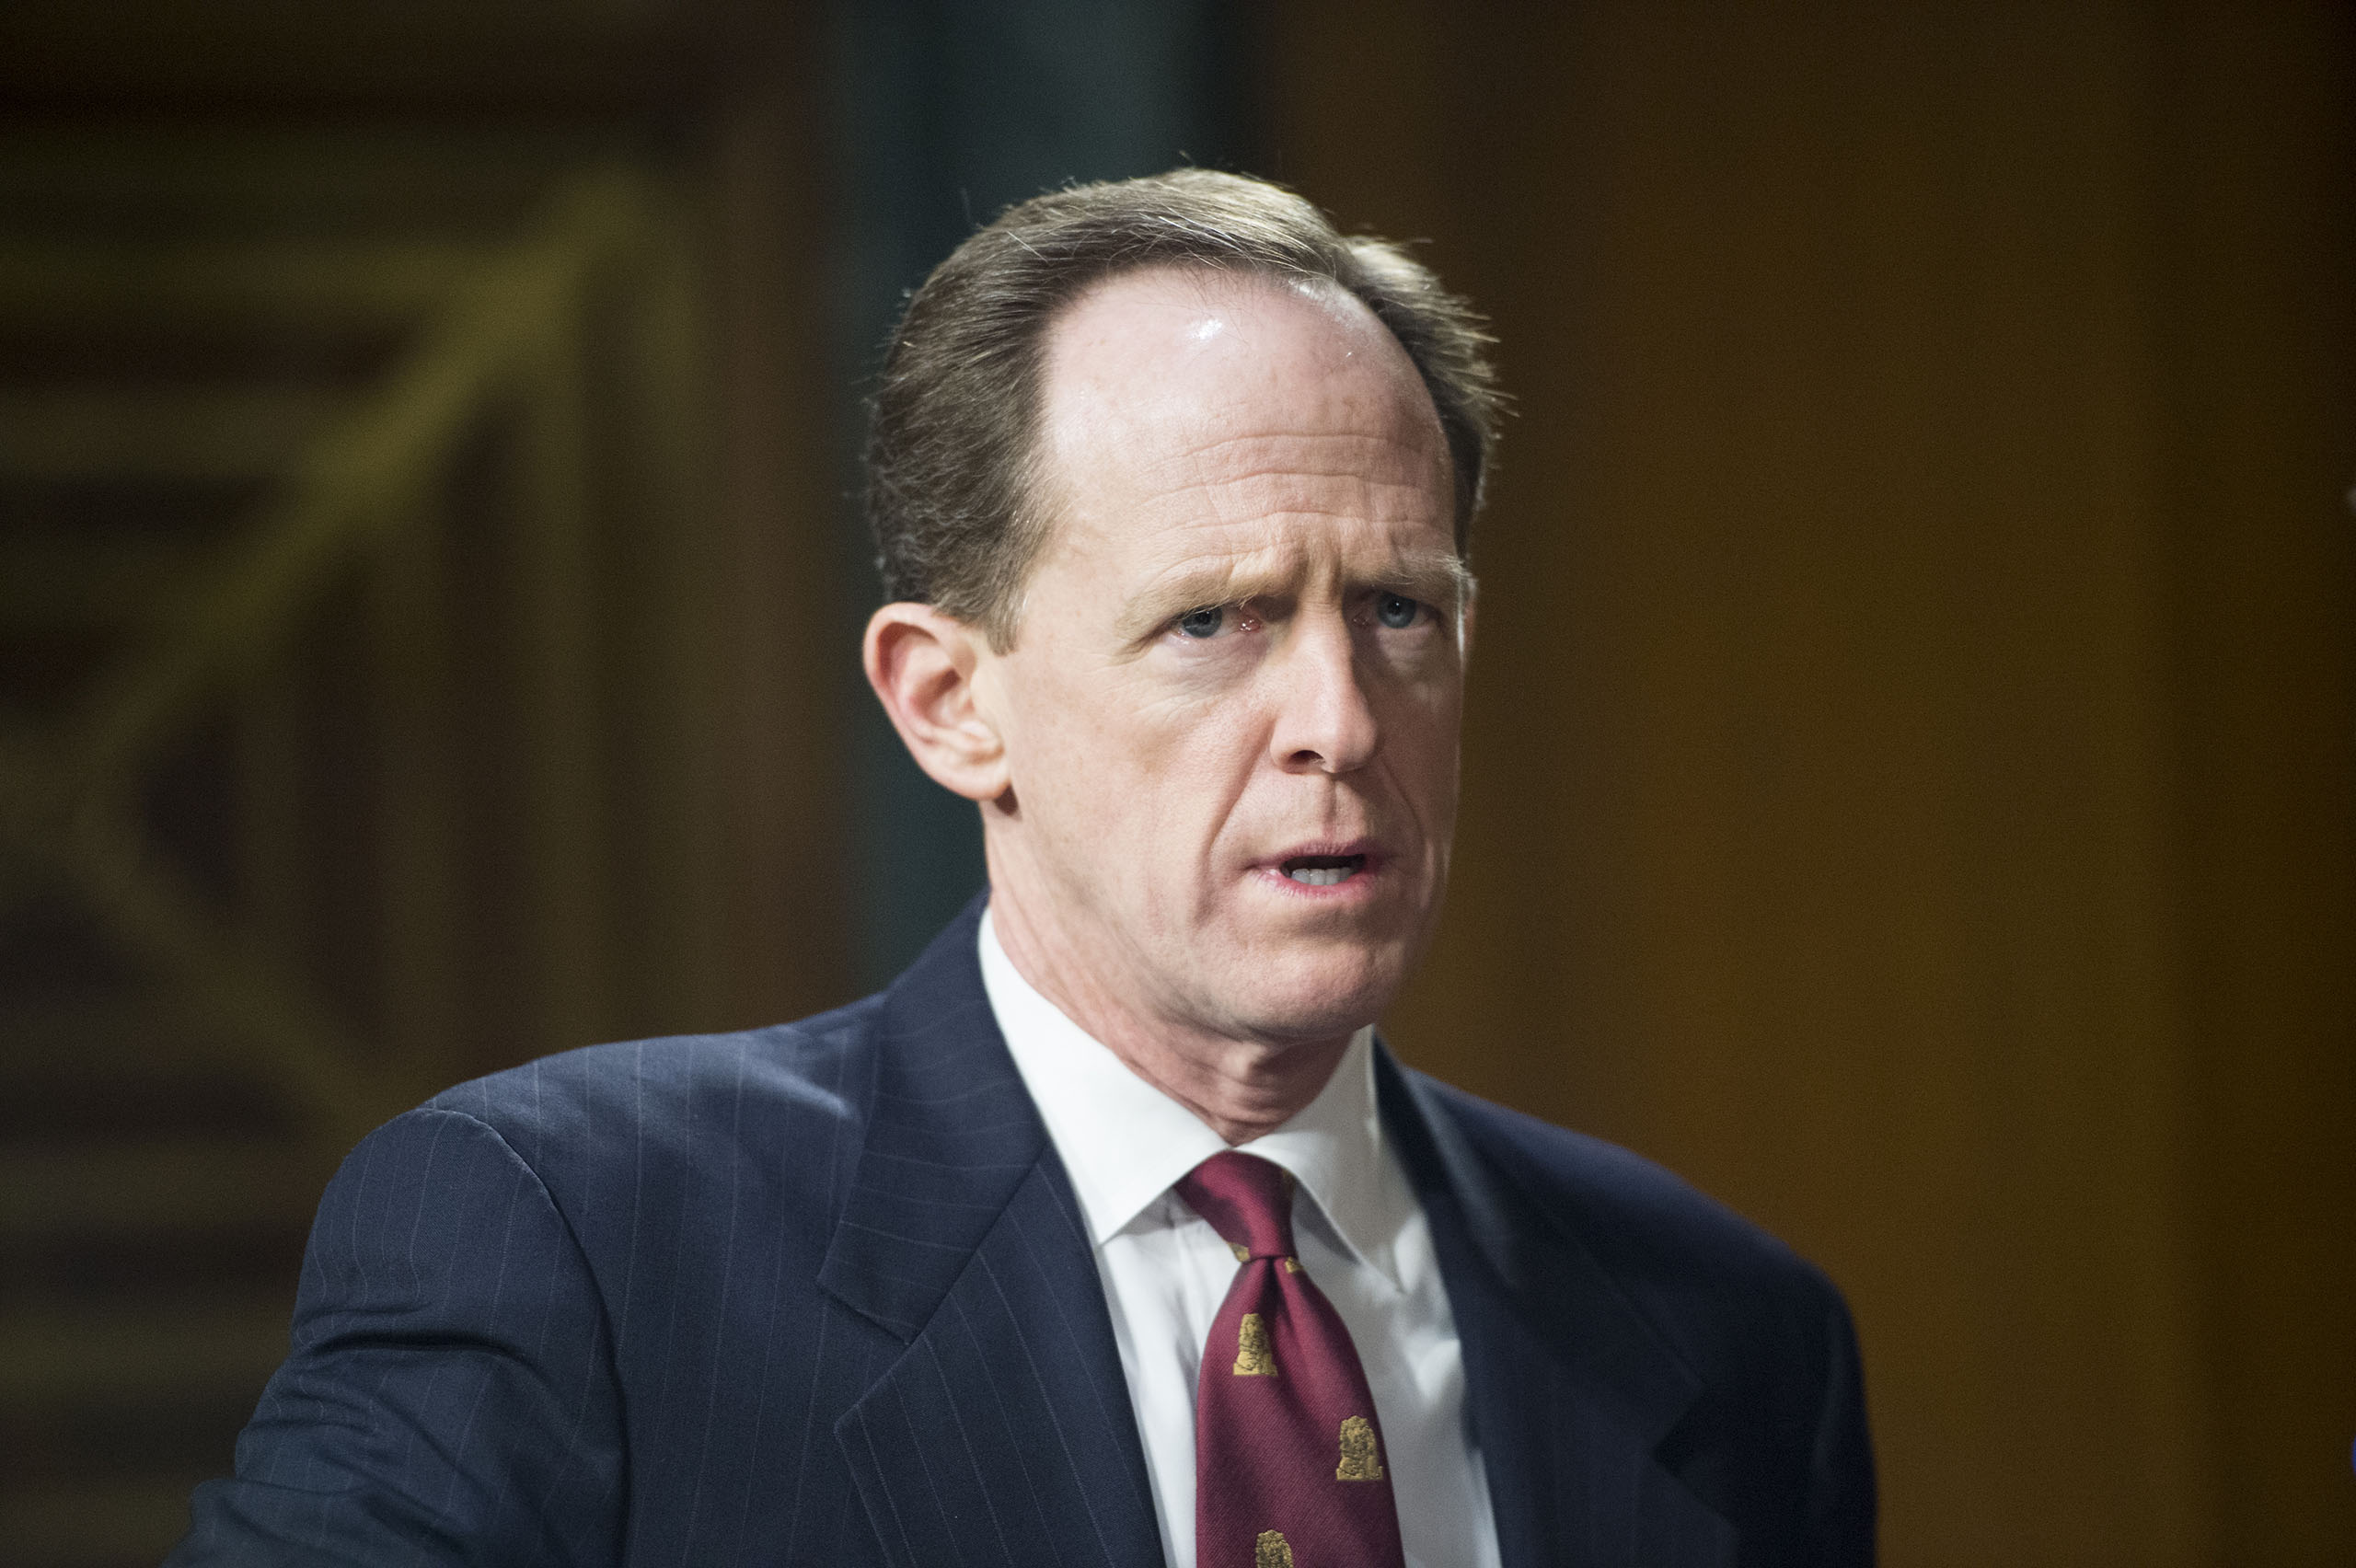 Pat Toomey arrives for the Senate Banking, Housing and Urban Affairs Committee hearing on  The Semiannual Monetary Policy Report to the Congress  on Feb. 24, 2015.